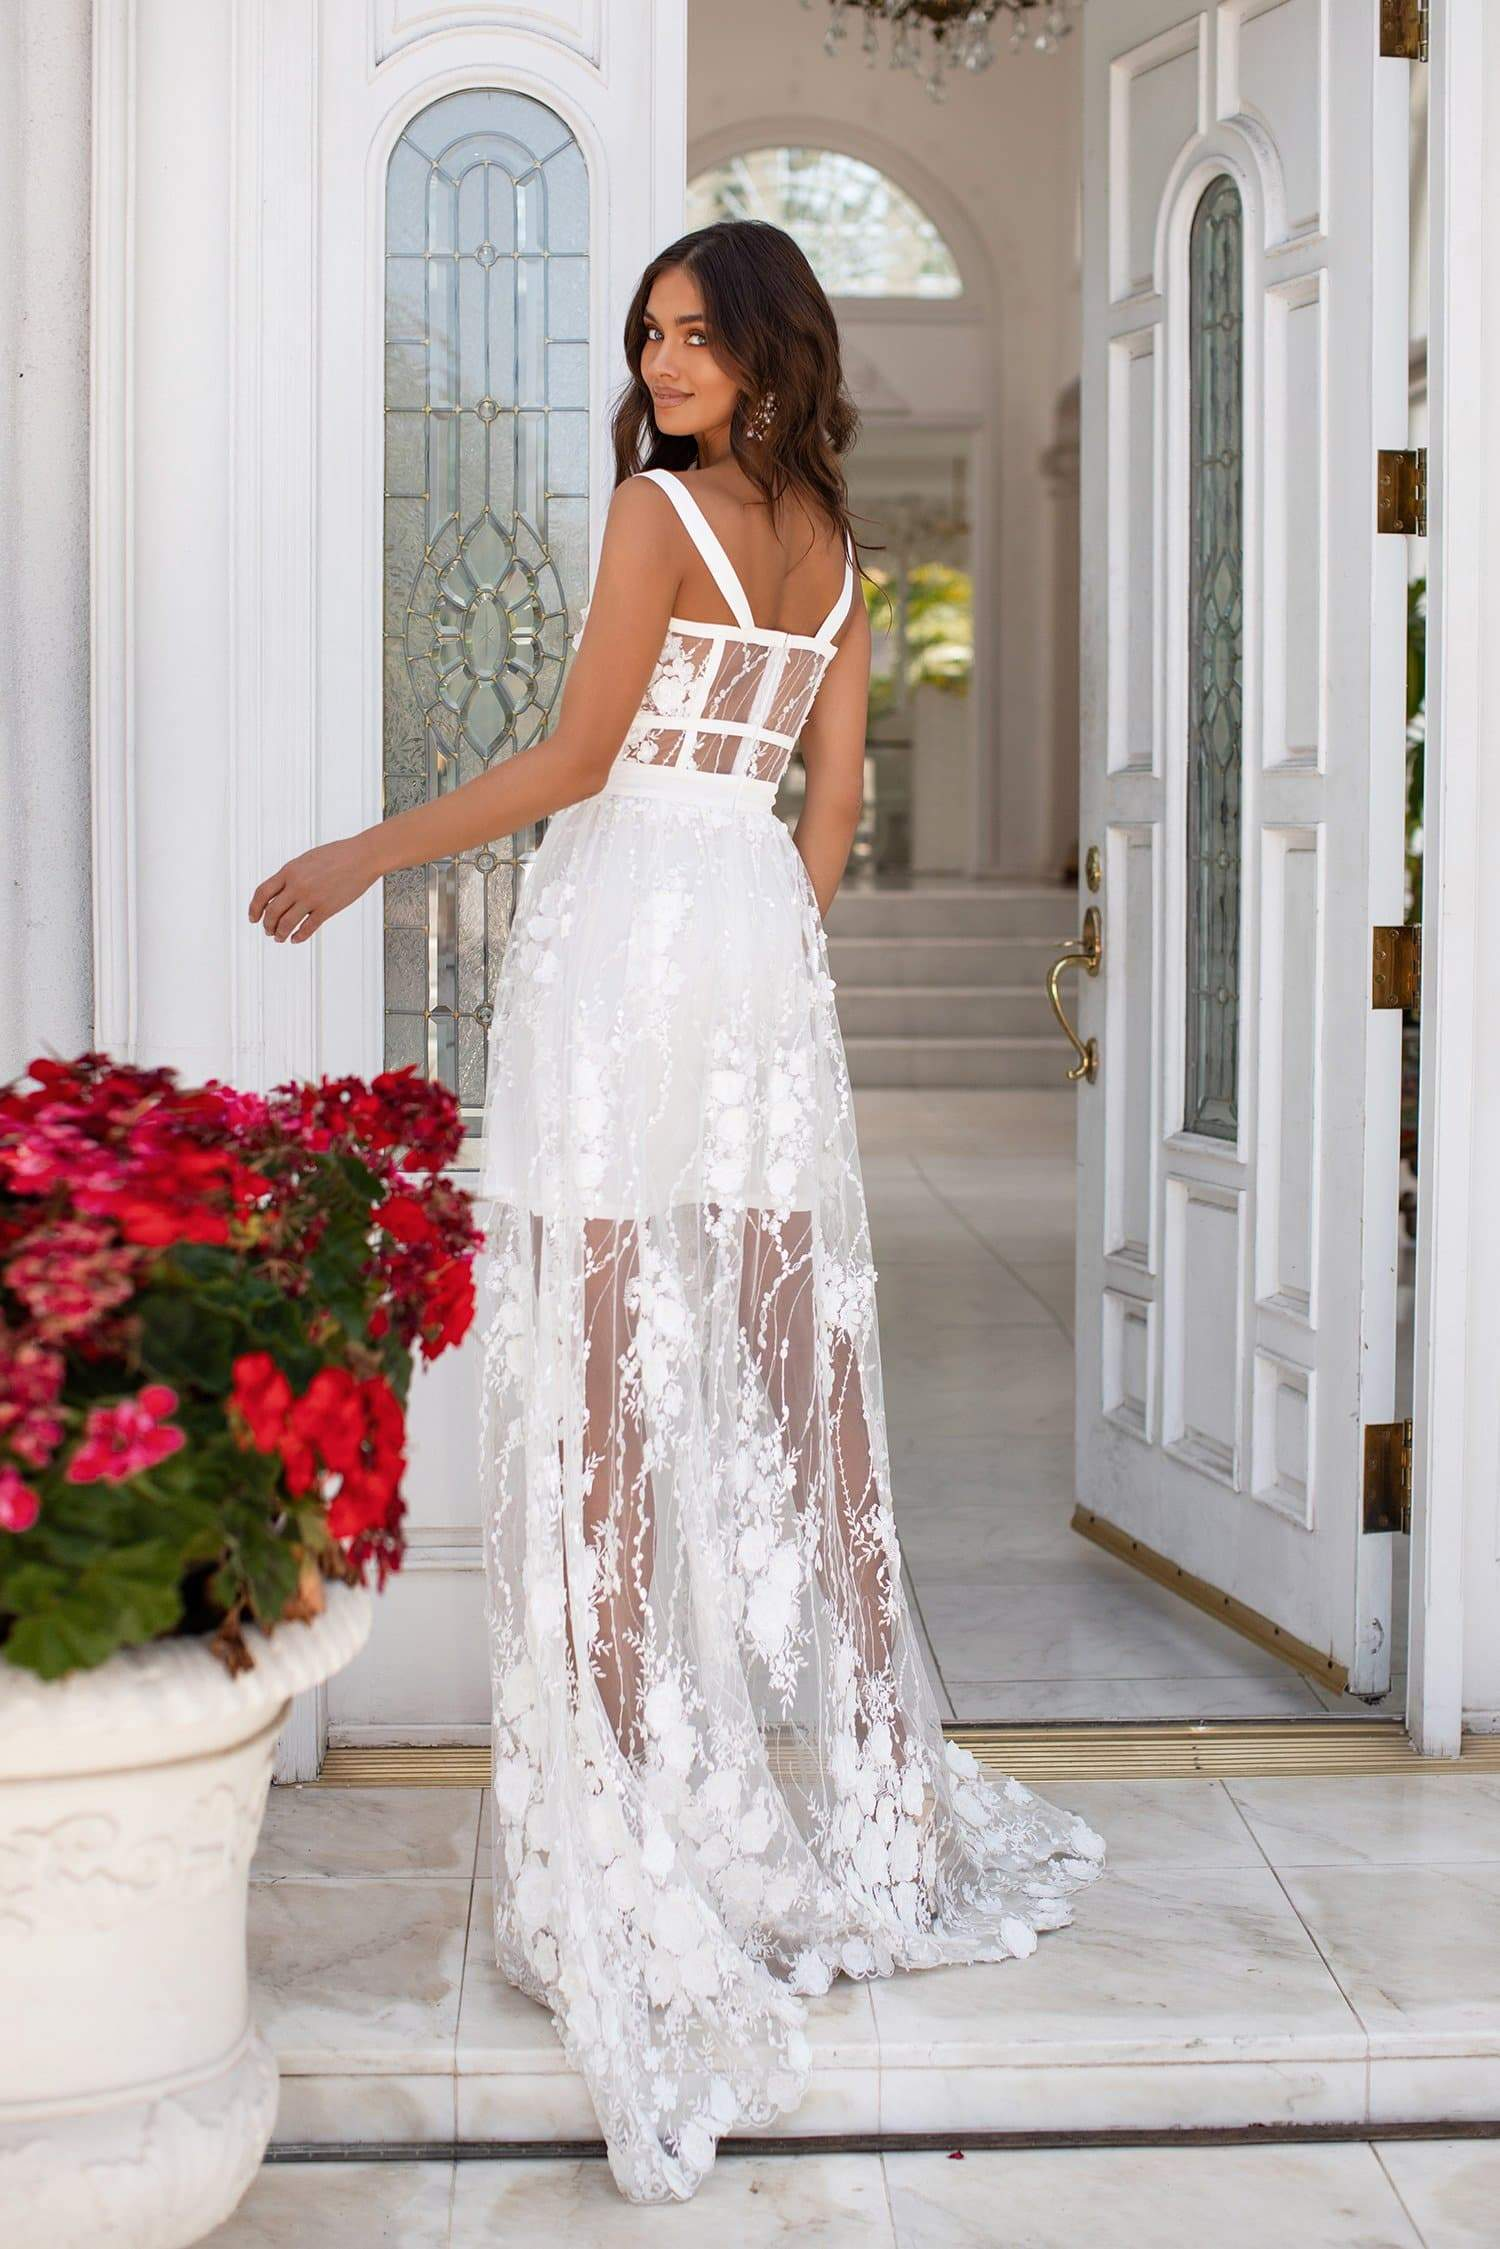 Mariella - White 3D Floral Embellished Gown with Structured Bodice